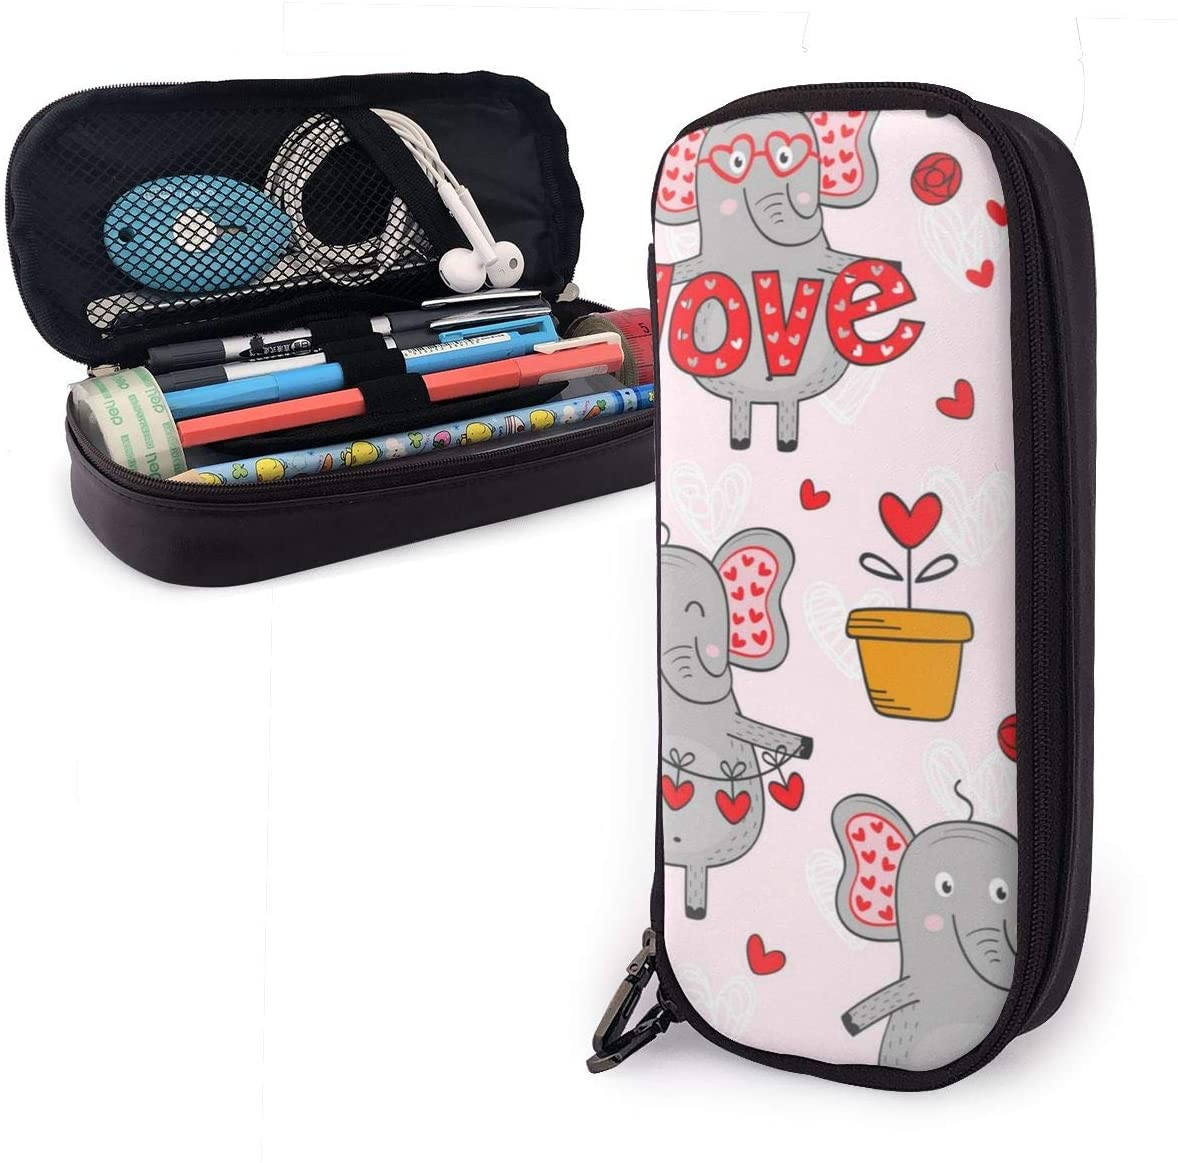 Pencil Case High Capacity Love Cute Elephant Pens Pencil Case with Zipper for School & Office Supplies Pencil Pouch Bag School Stationery Compact Cosmetic Bag